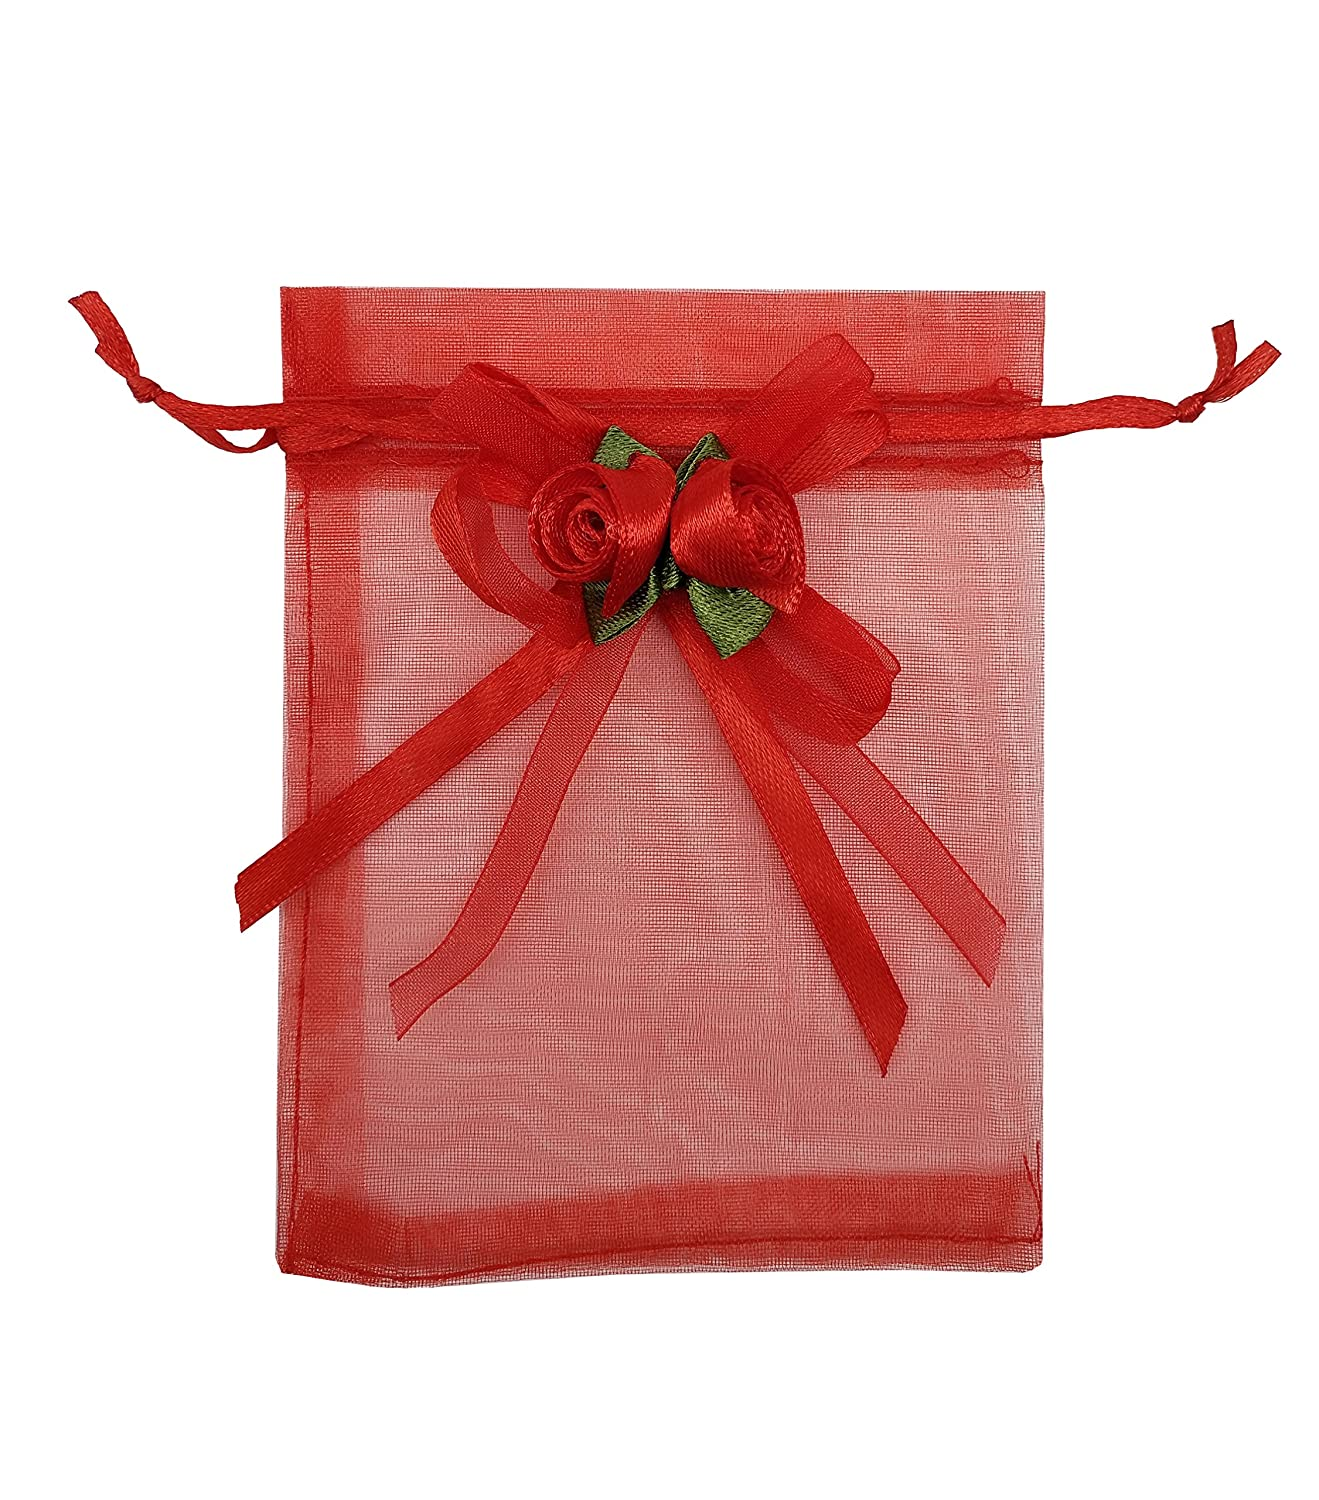 Amazon.com: Ankirol 20pcs Sheer Organza Favor Bags For Wedding 3.8x4 ...